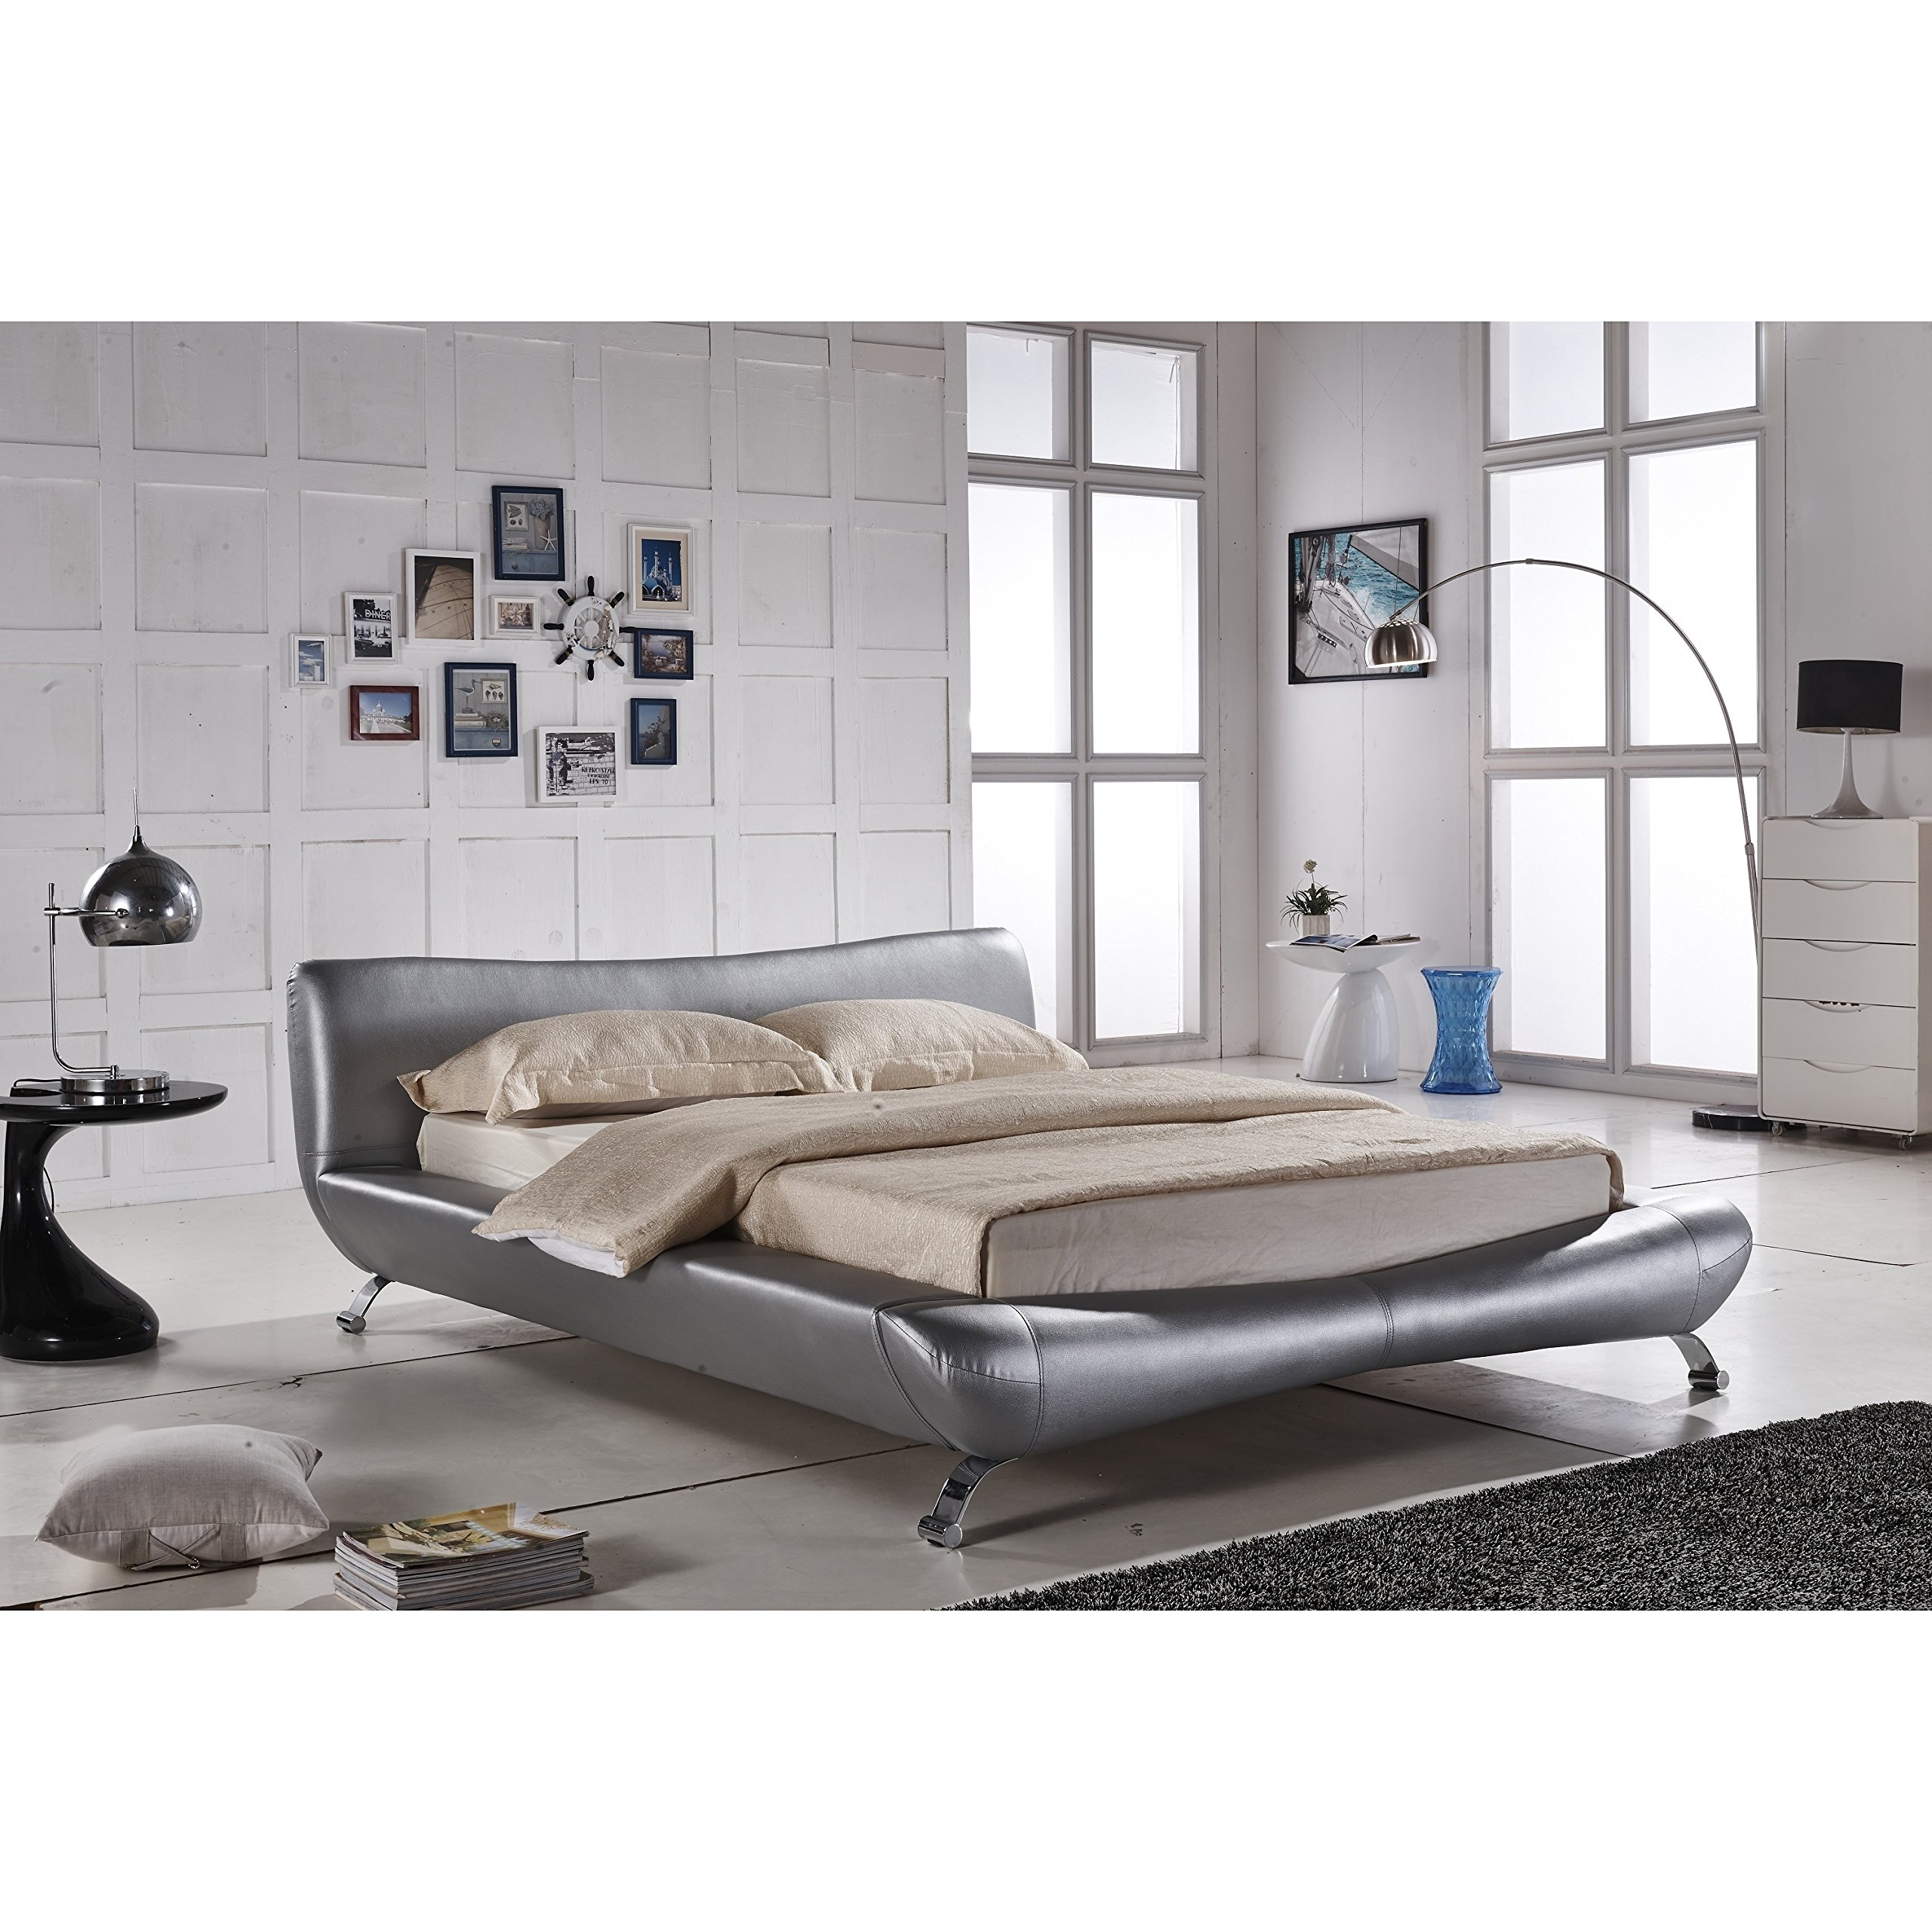 Container Furniture Direct Joyce Collection Contemporary Faux Leather Platform Bed with Headboard, Silver, Queen